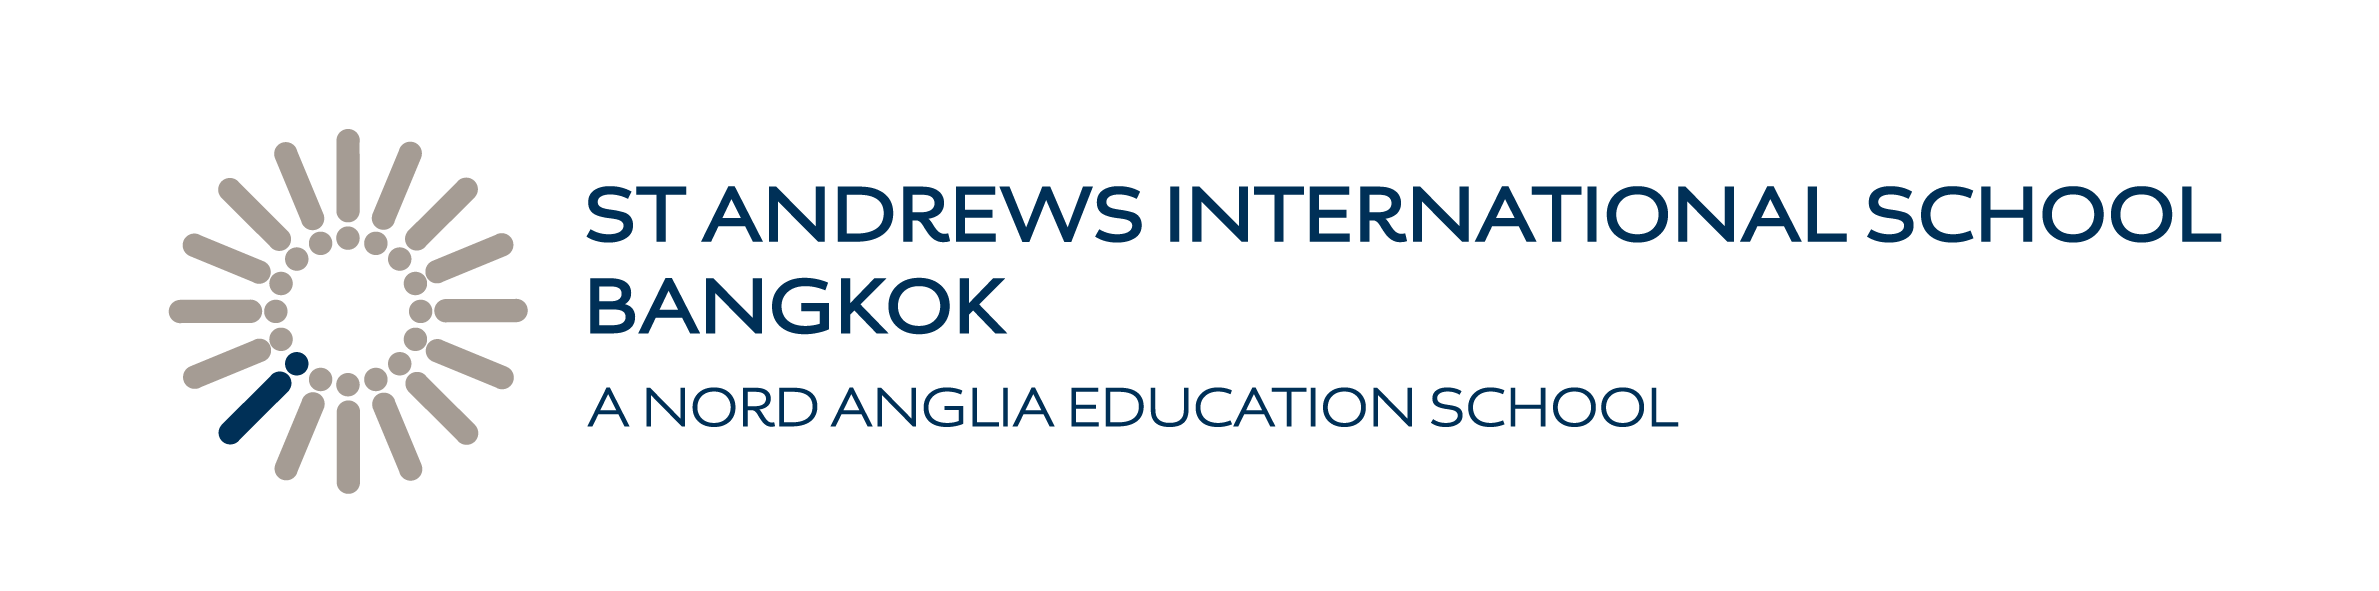 St Andrews International School Bangkok Logo